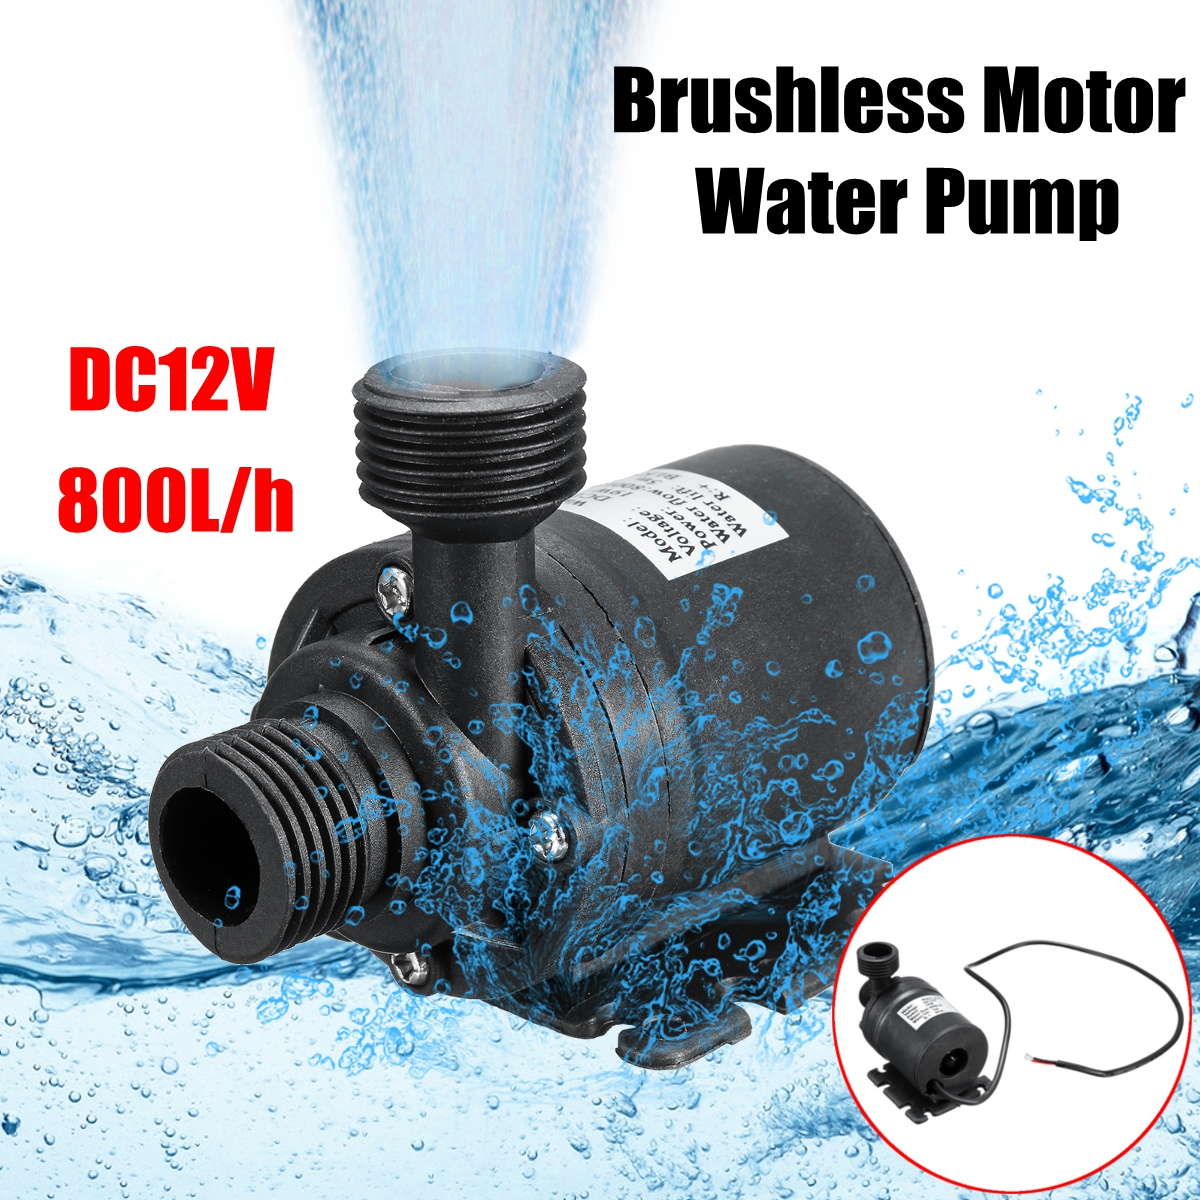 Waterproof DC 12V 5M 800L/H Portable Mini Brushless Motor Ultra-quiet Submersible Water Pump For Cooling System Fountains Heater